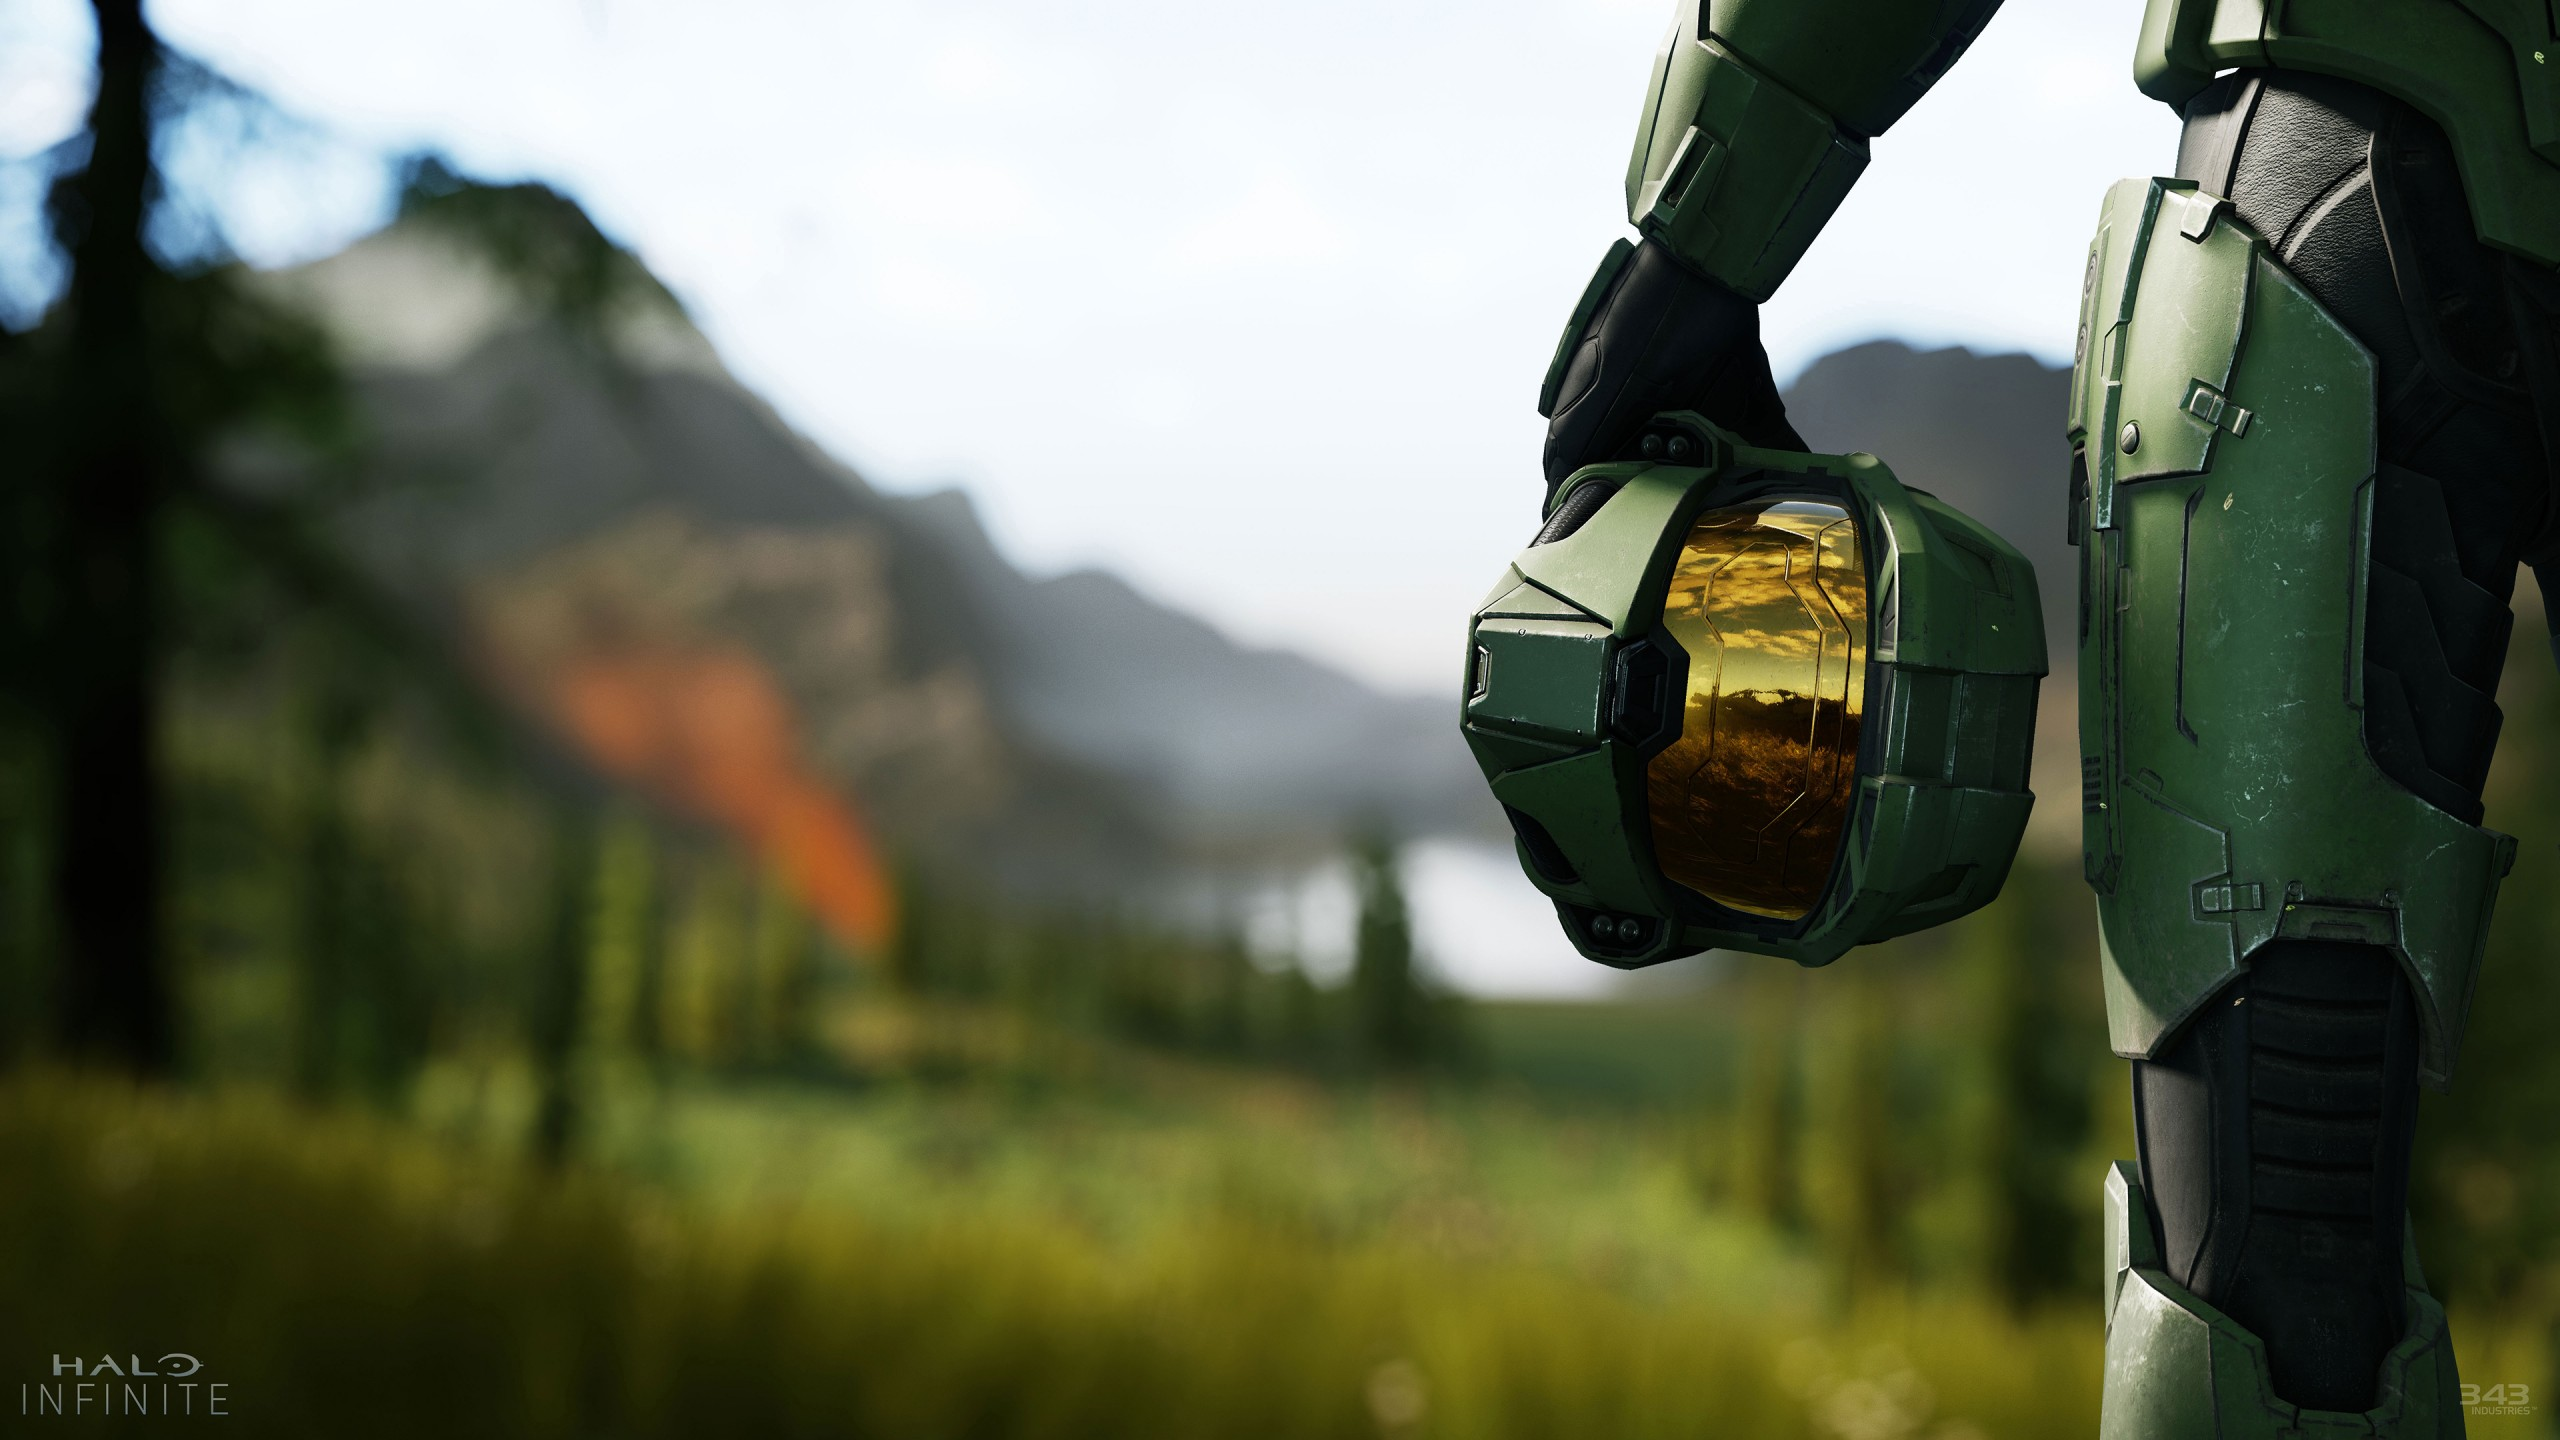 Minimalist Cute Desktop Wallpaper Halo Infinite E3 2018 4k Wallpapers Hd Wallpapers Id